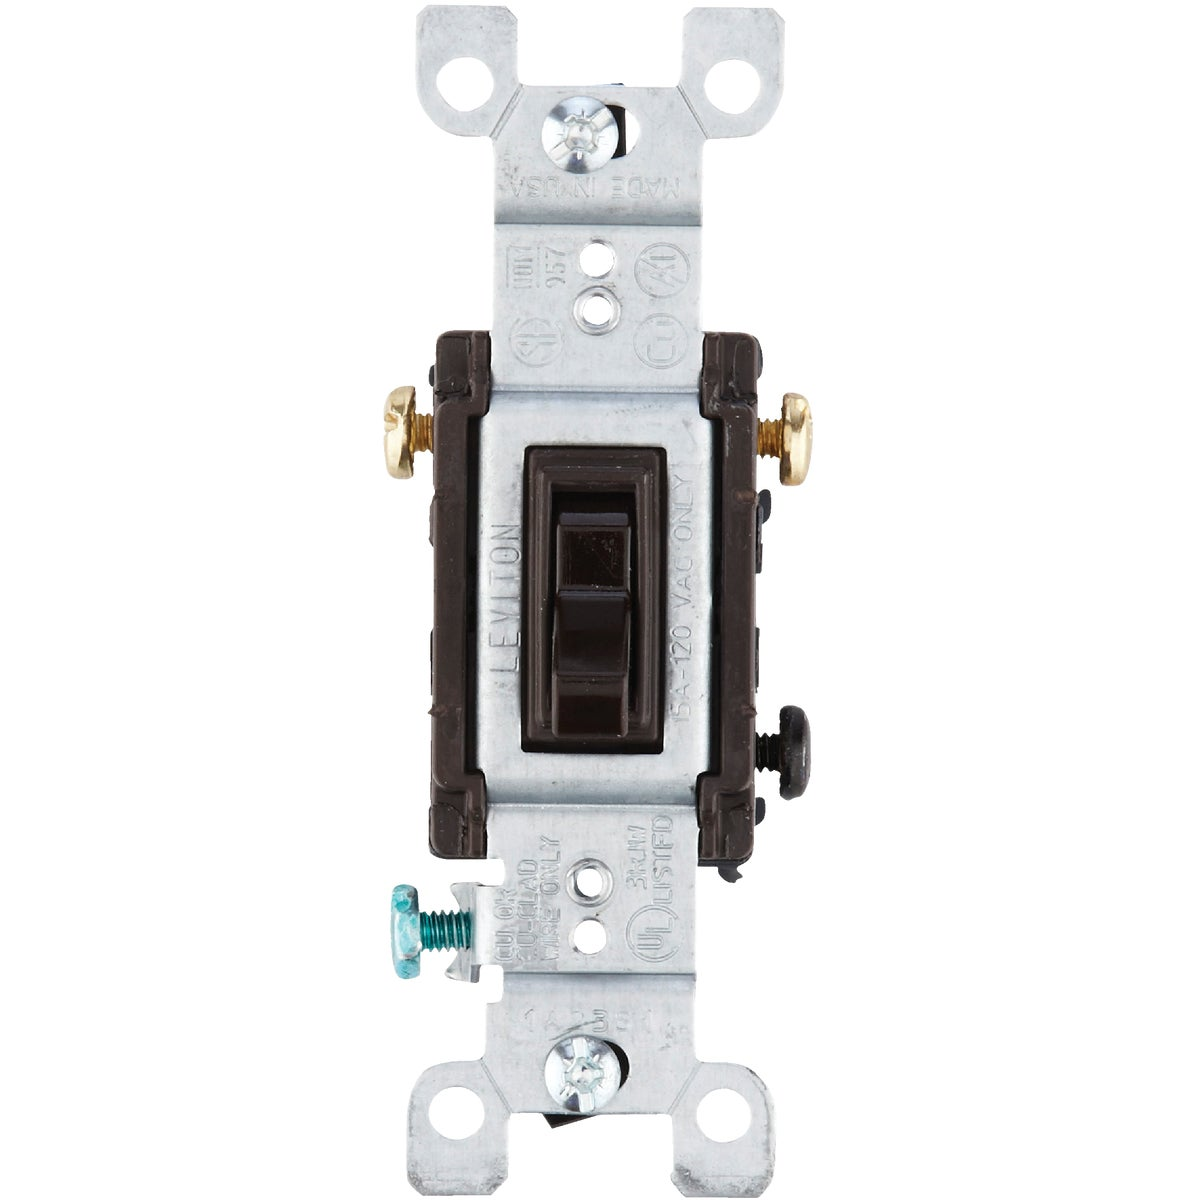 BRN 3-WAY GRND SWITCH - 215-1453-2CP by Leviton Mfg Co